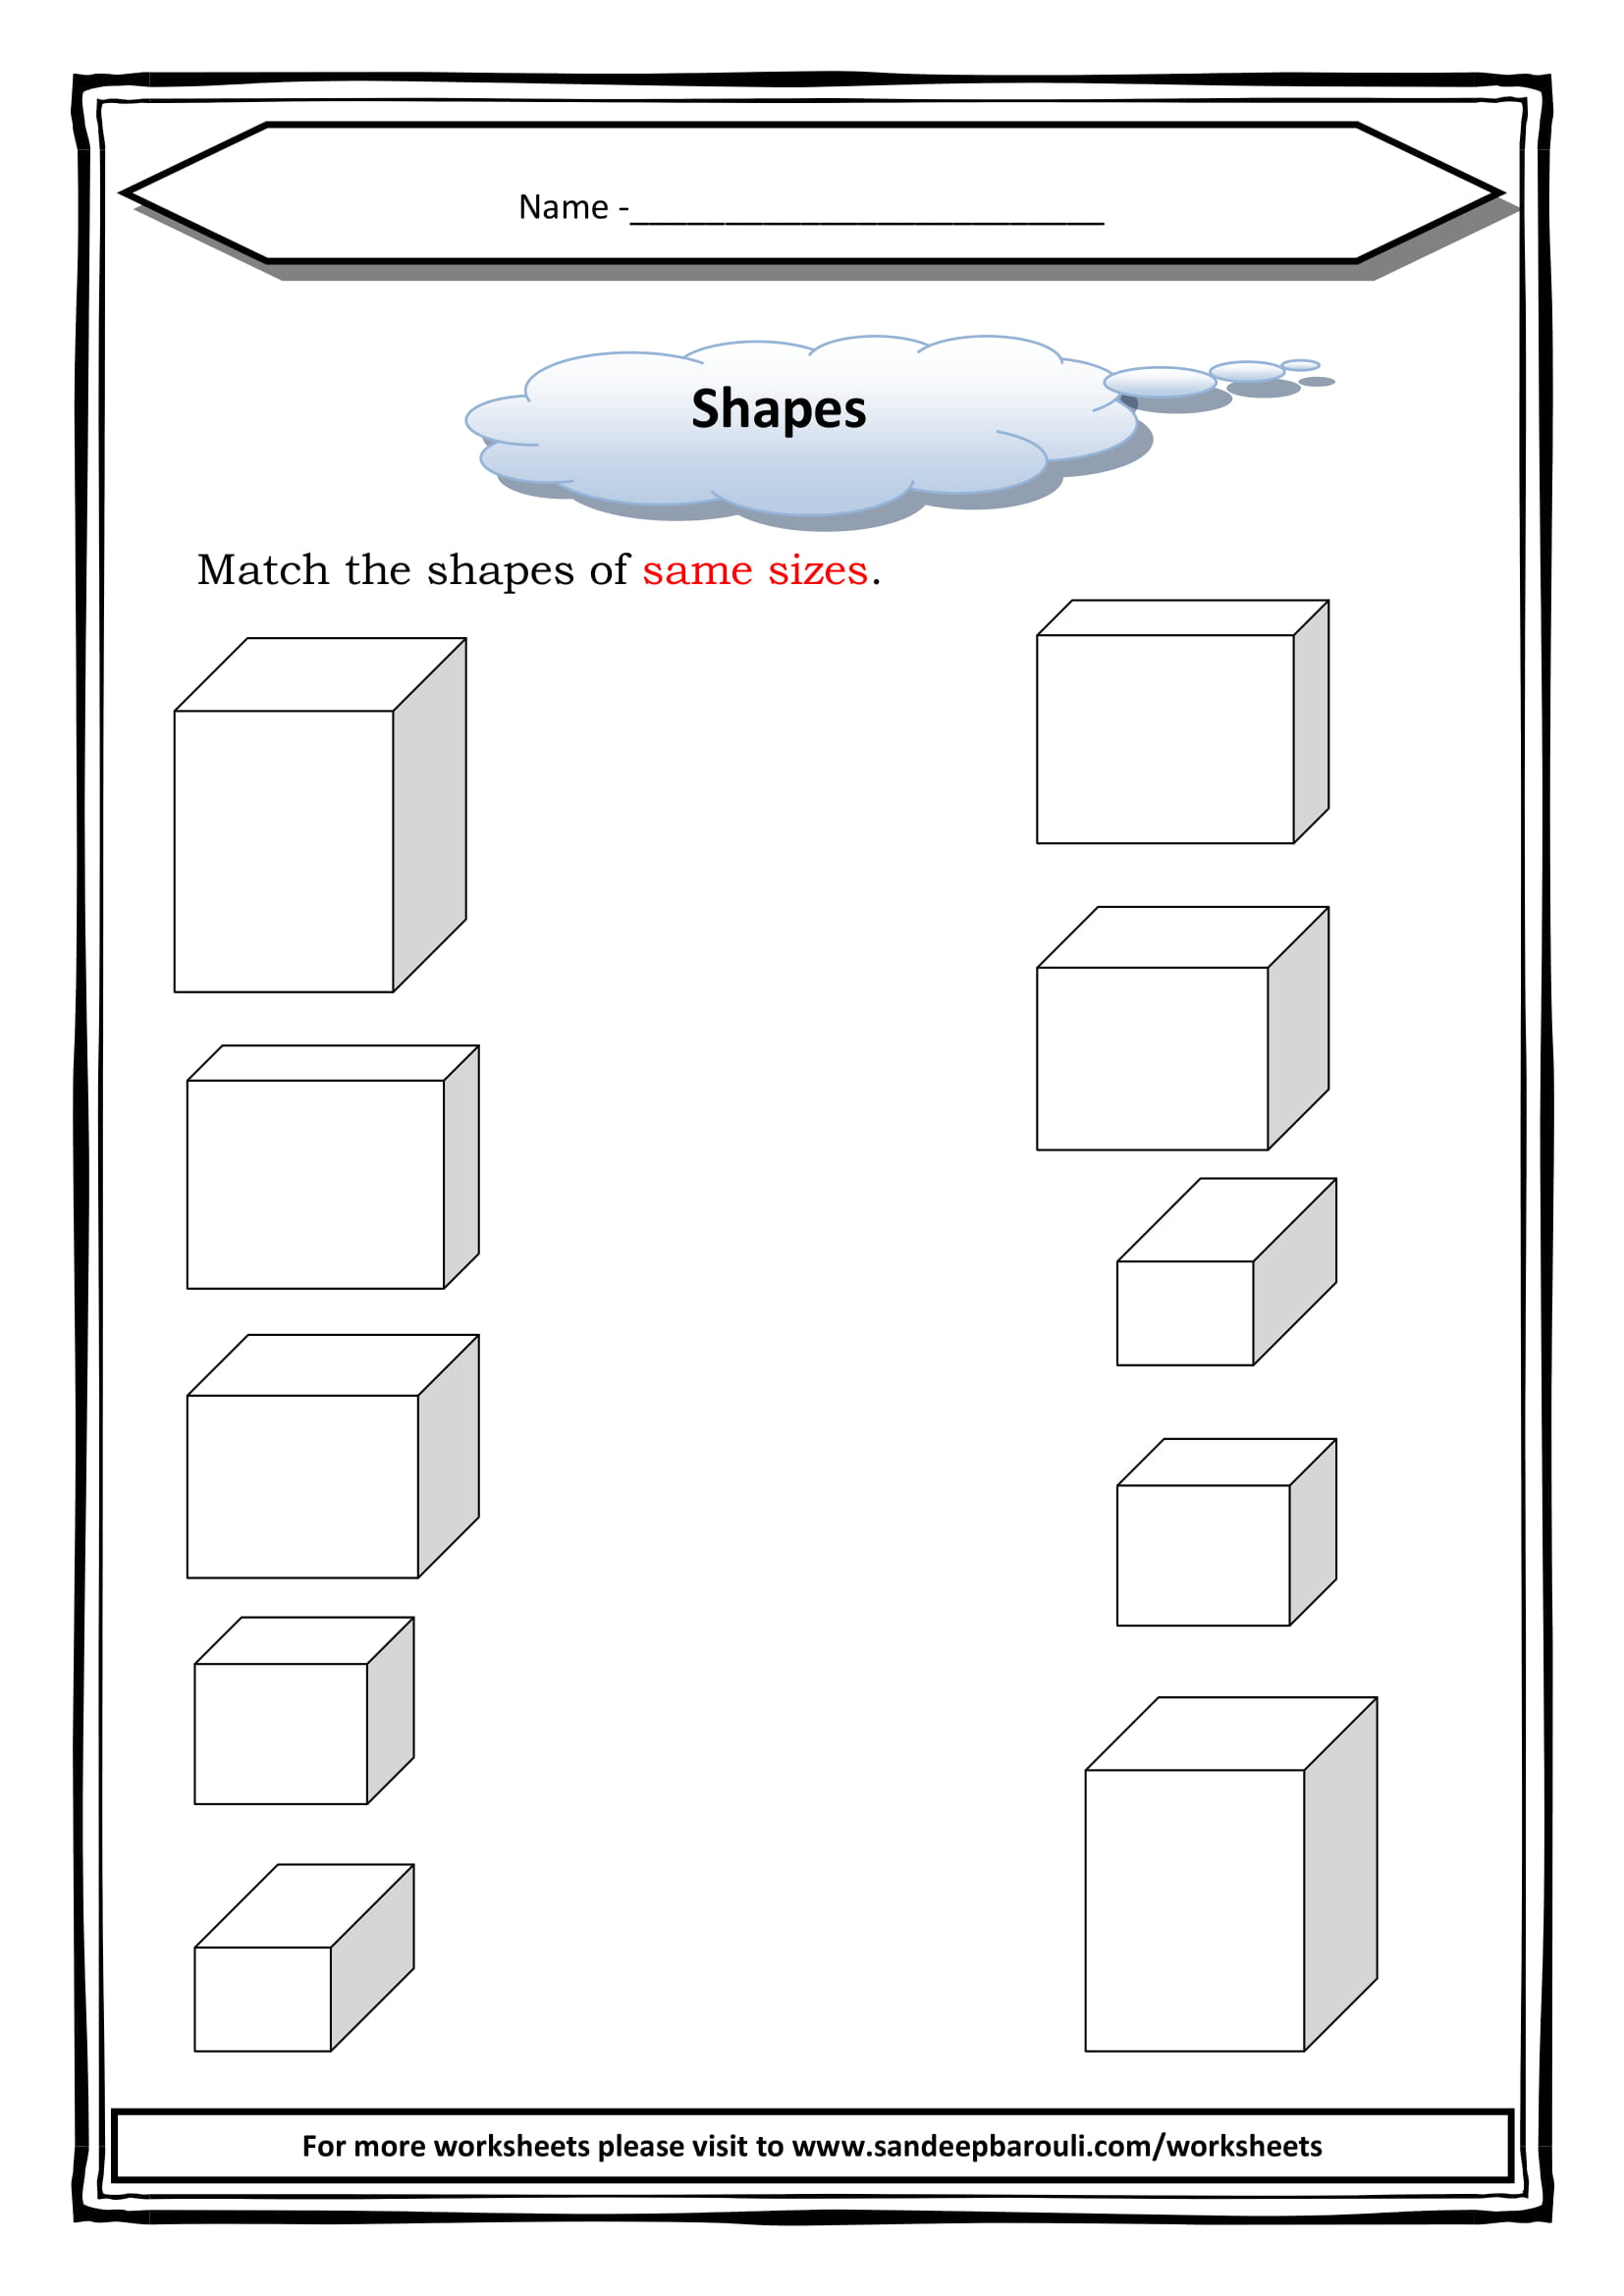 Match The Shapes Of Same Sizes Worksheet For Class 1